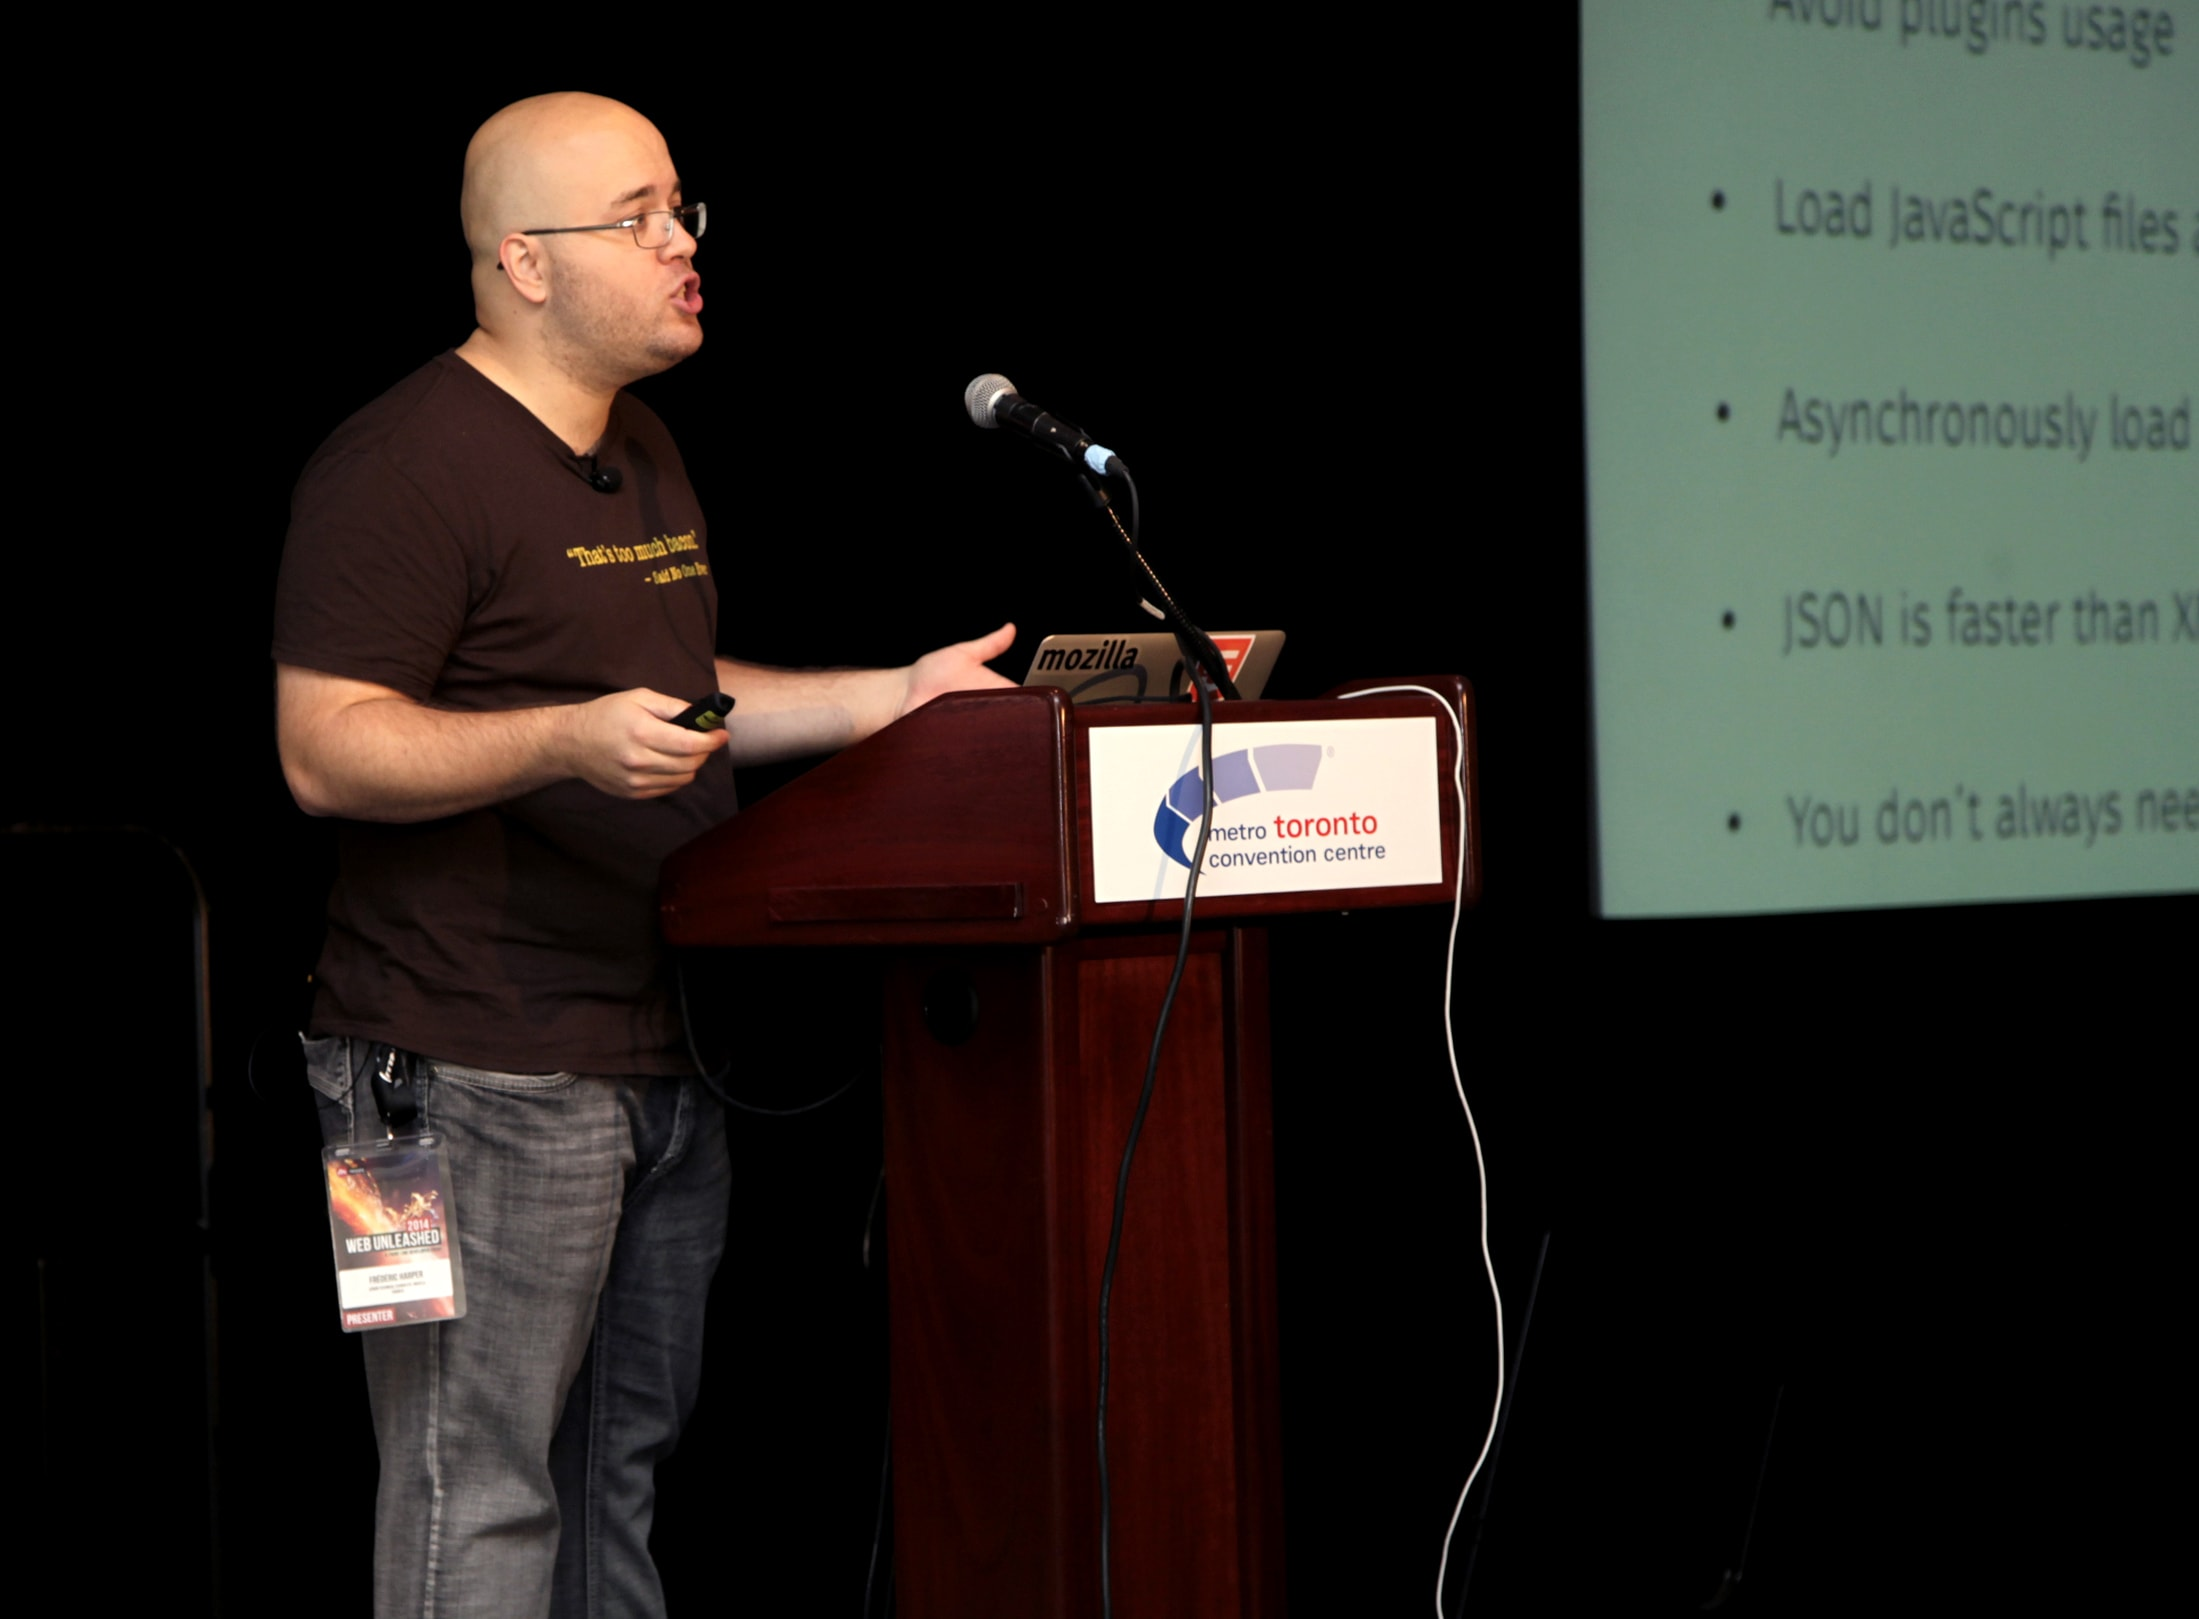 A picture of me giving a talk at FITC